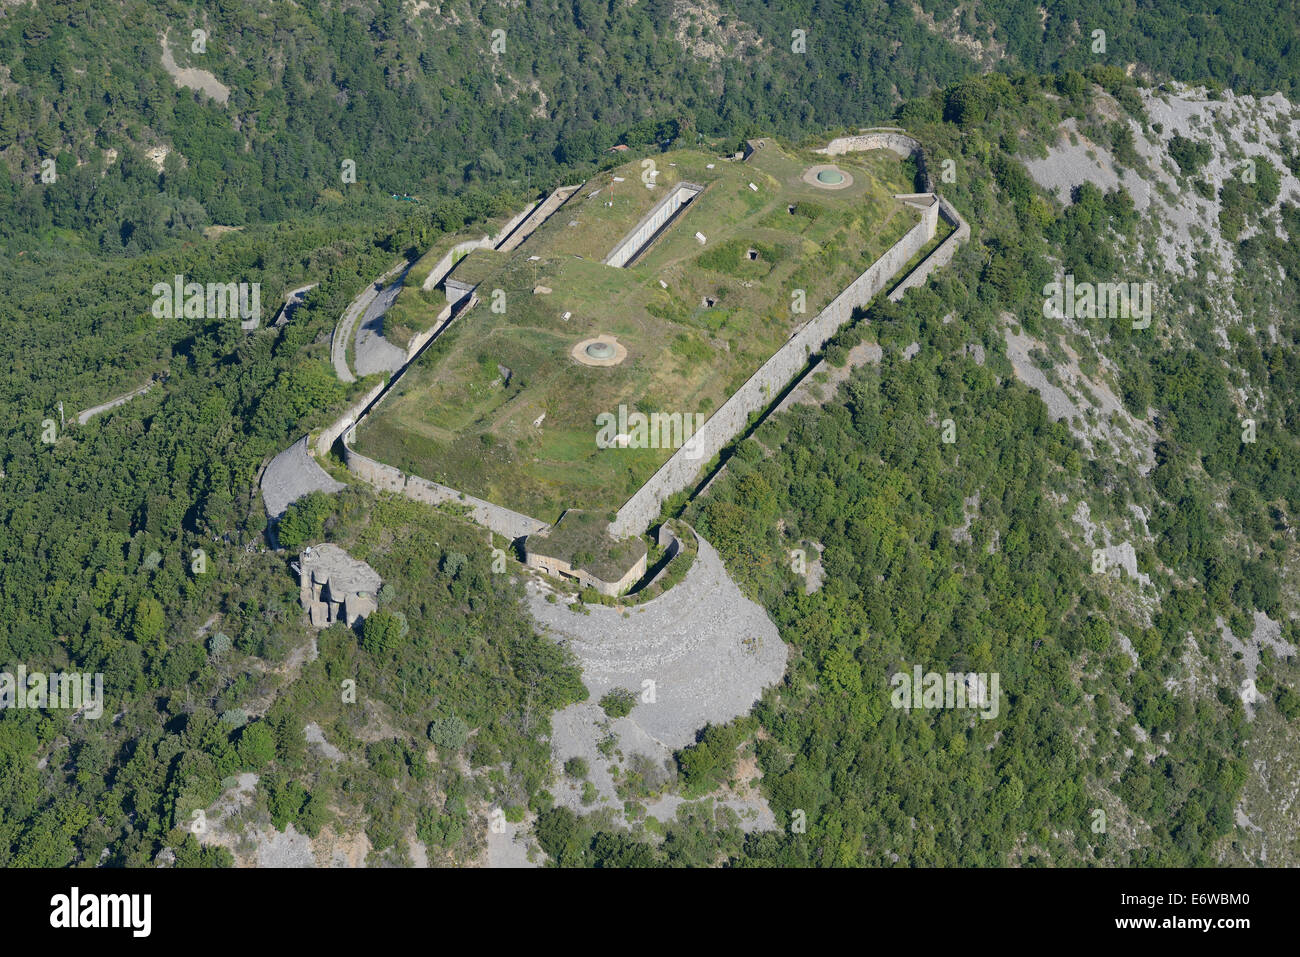 FORT DU BARBONNET (aerial view). Above Sospel, Alpes-Maritimes, French Riviera, France. - Stock Image